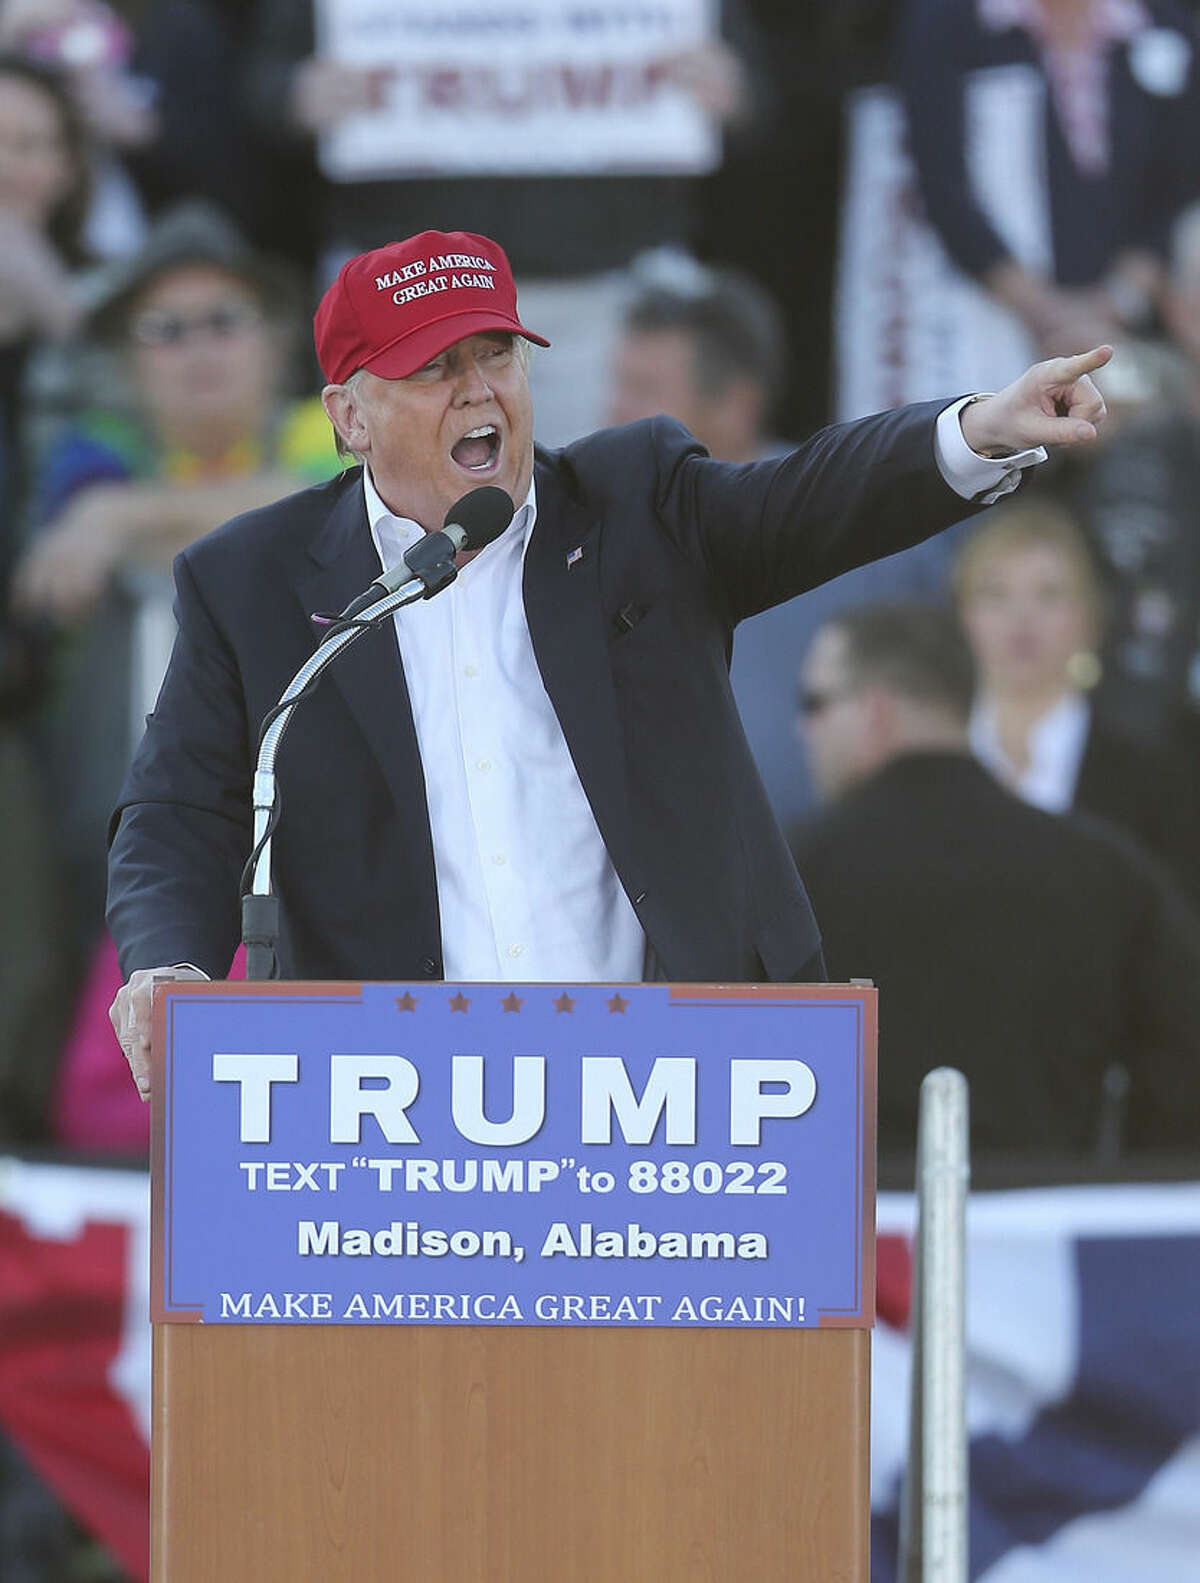 Republican presidential candidate Donald Trump speaks during a rally Sunday, Feb. 28, 2016, in Madison, Ala. (AP Photo/John Bazemore)